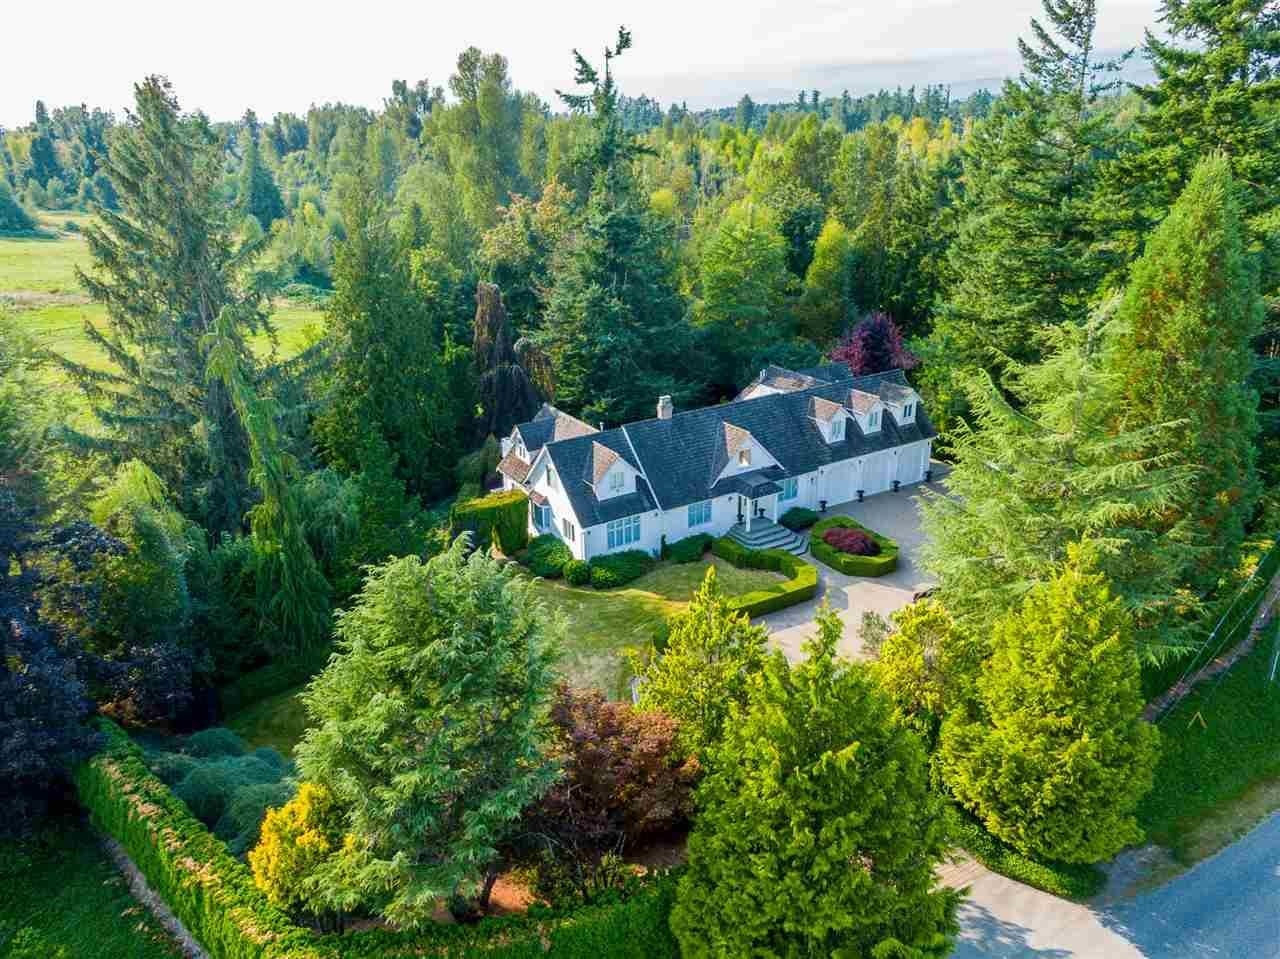 Main Photo: 5571 ROSS ROAD in Abbotsford: Agriculture for sale : MLS®# C8037560